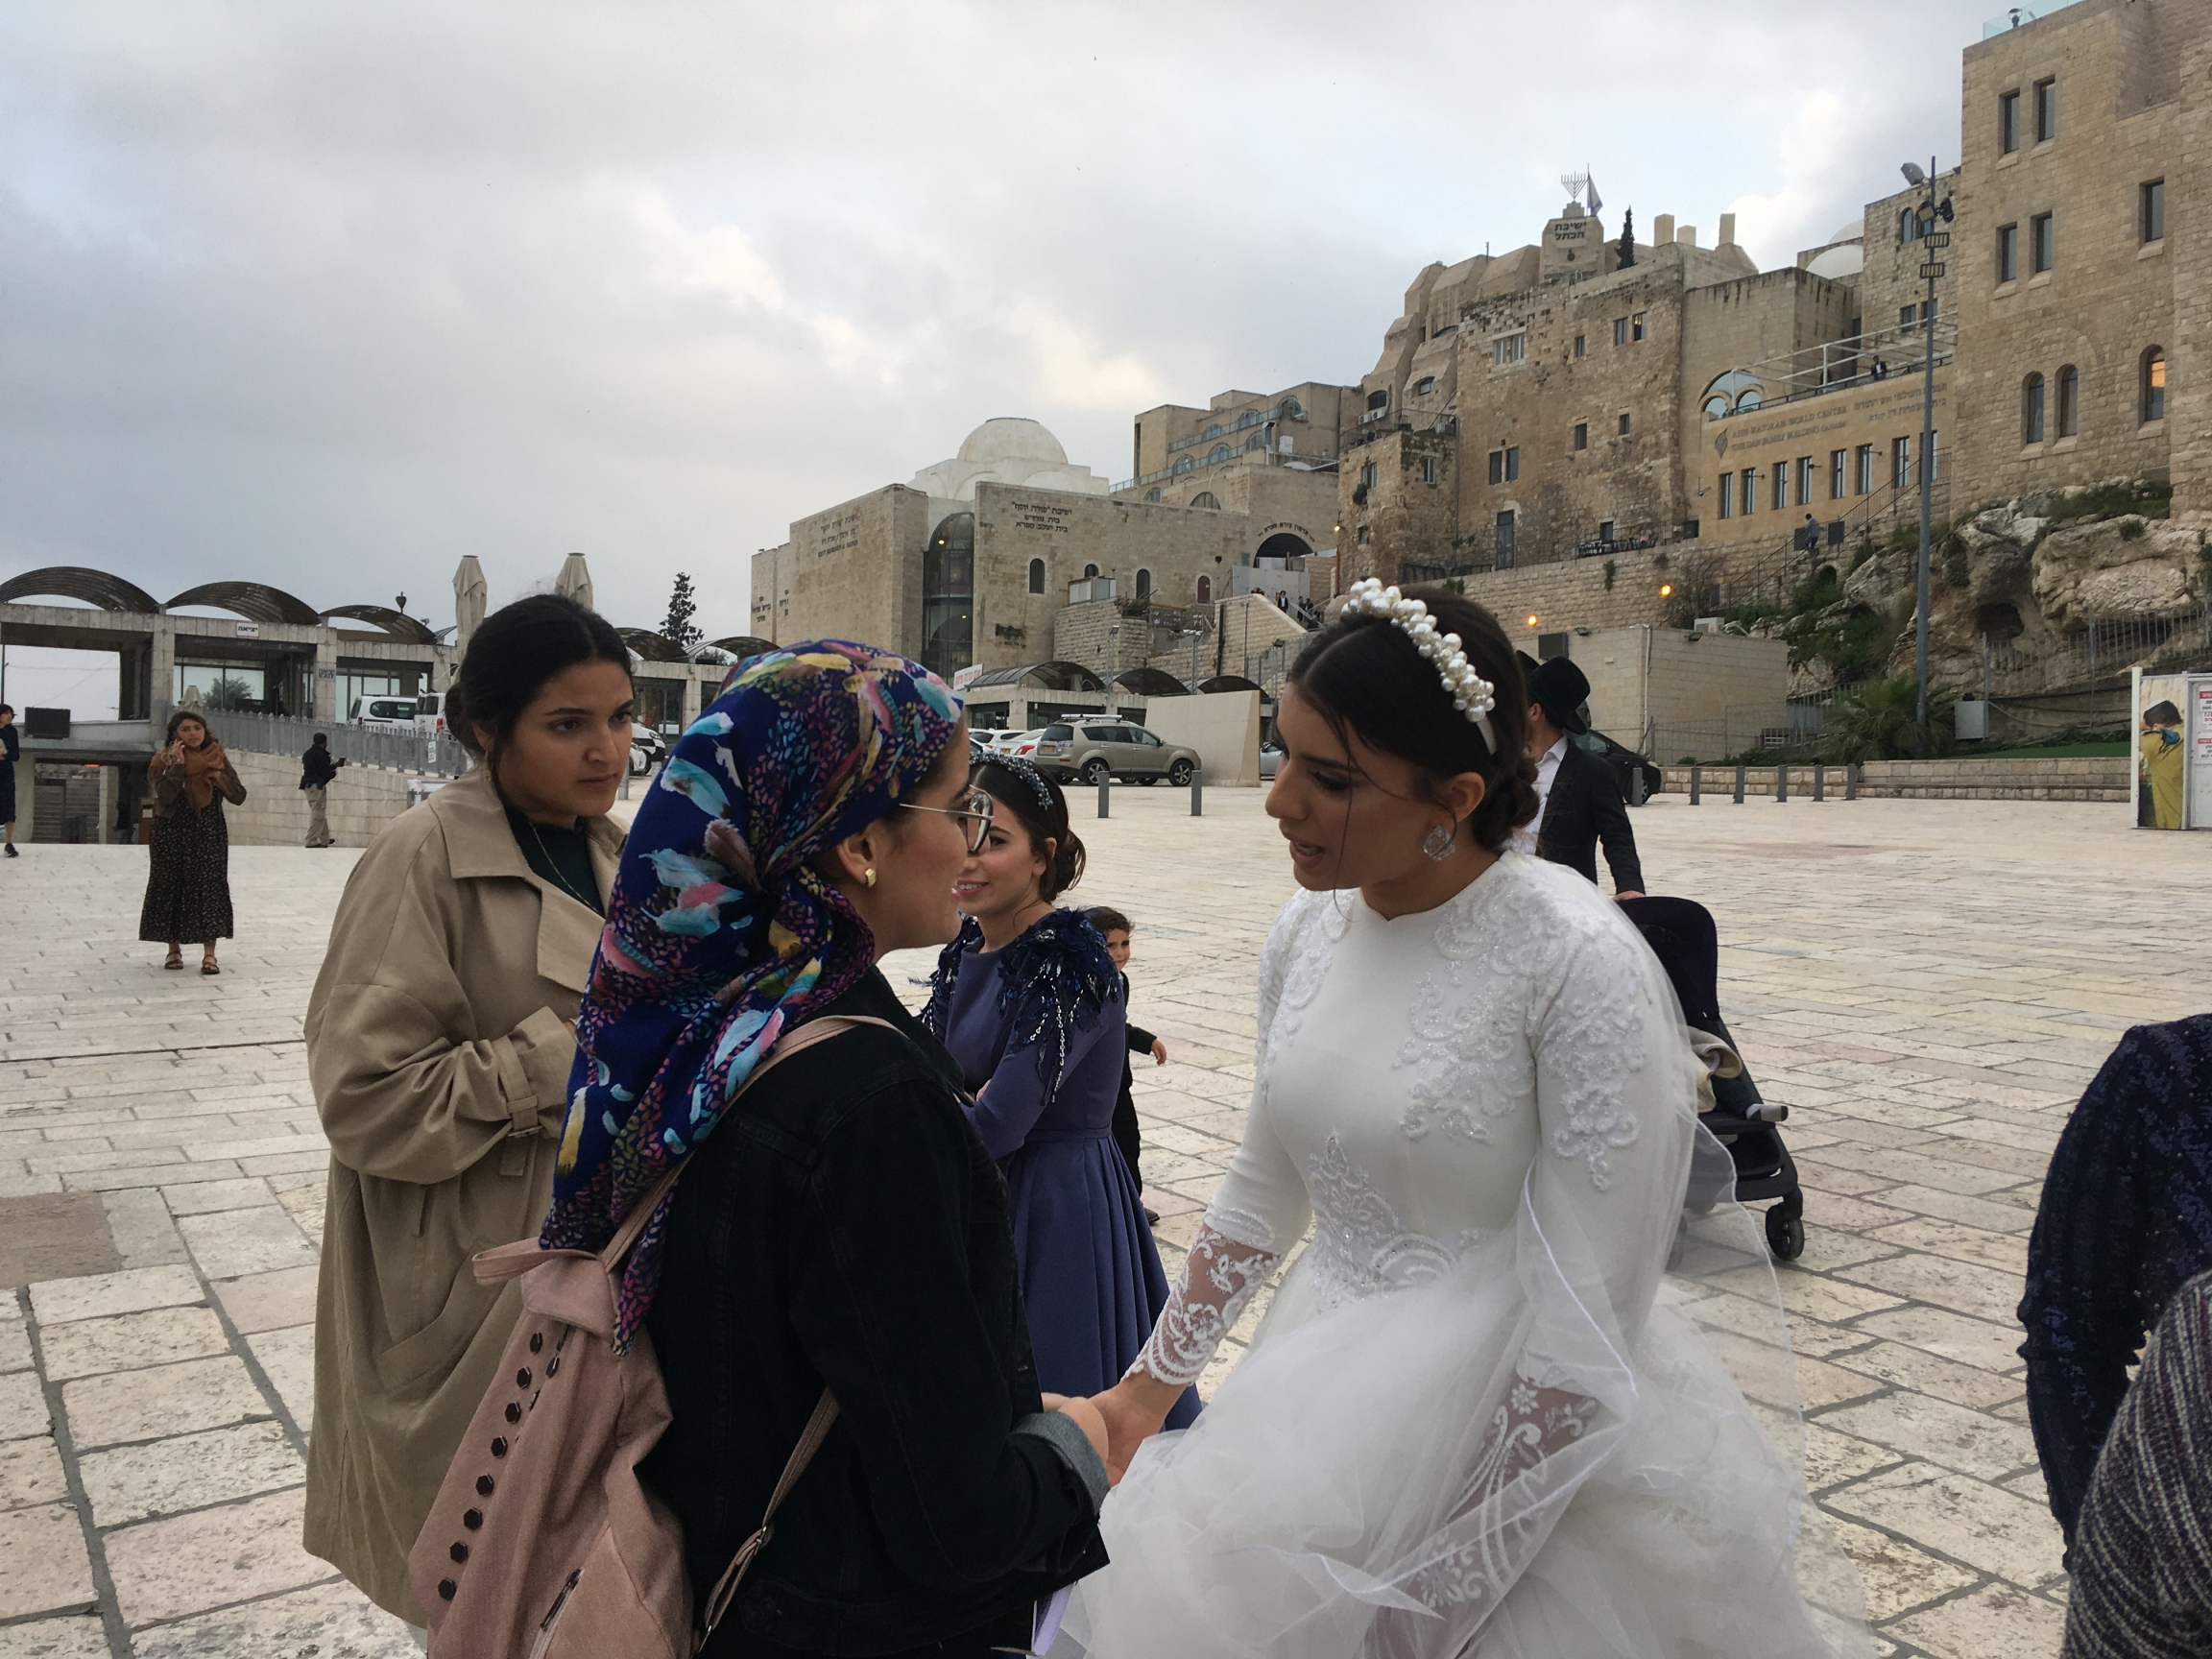 Idit Tedgi gets close to other worshippers to offer blessings on her wedding day.